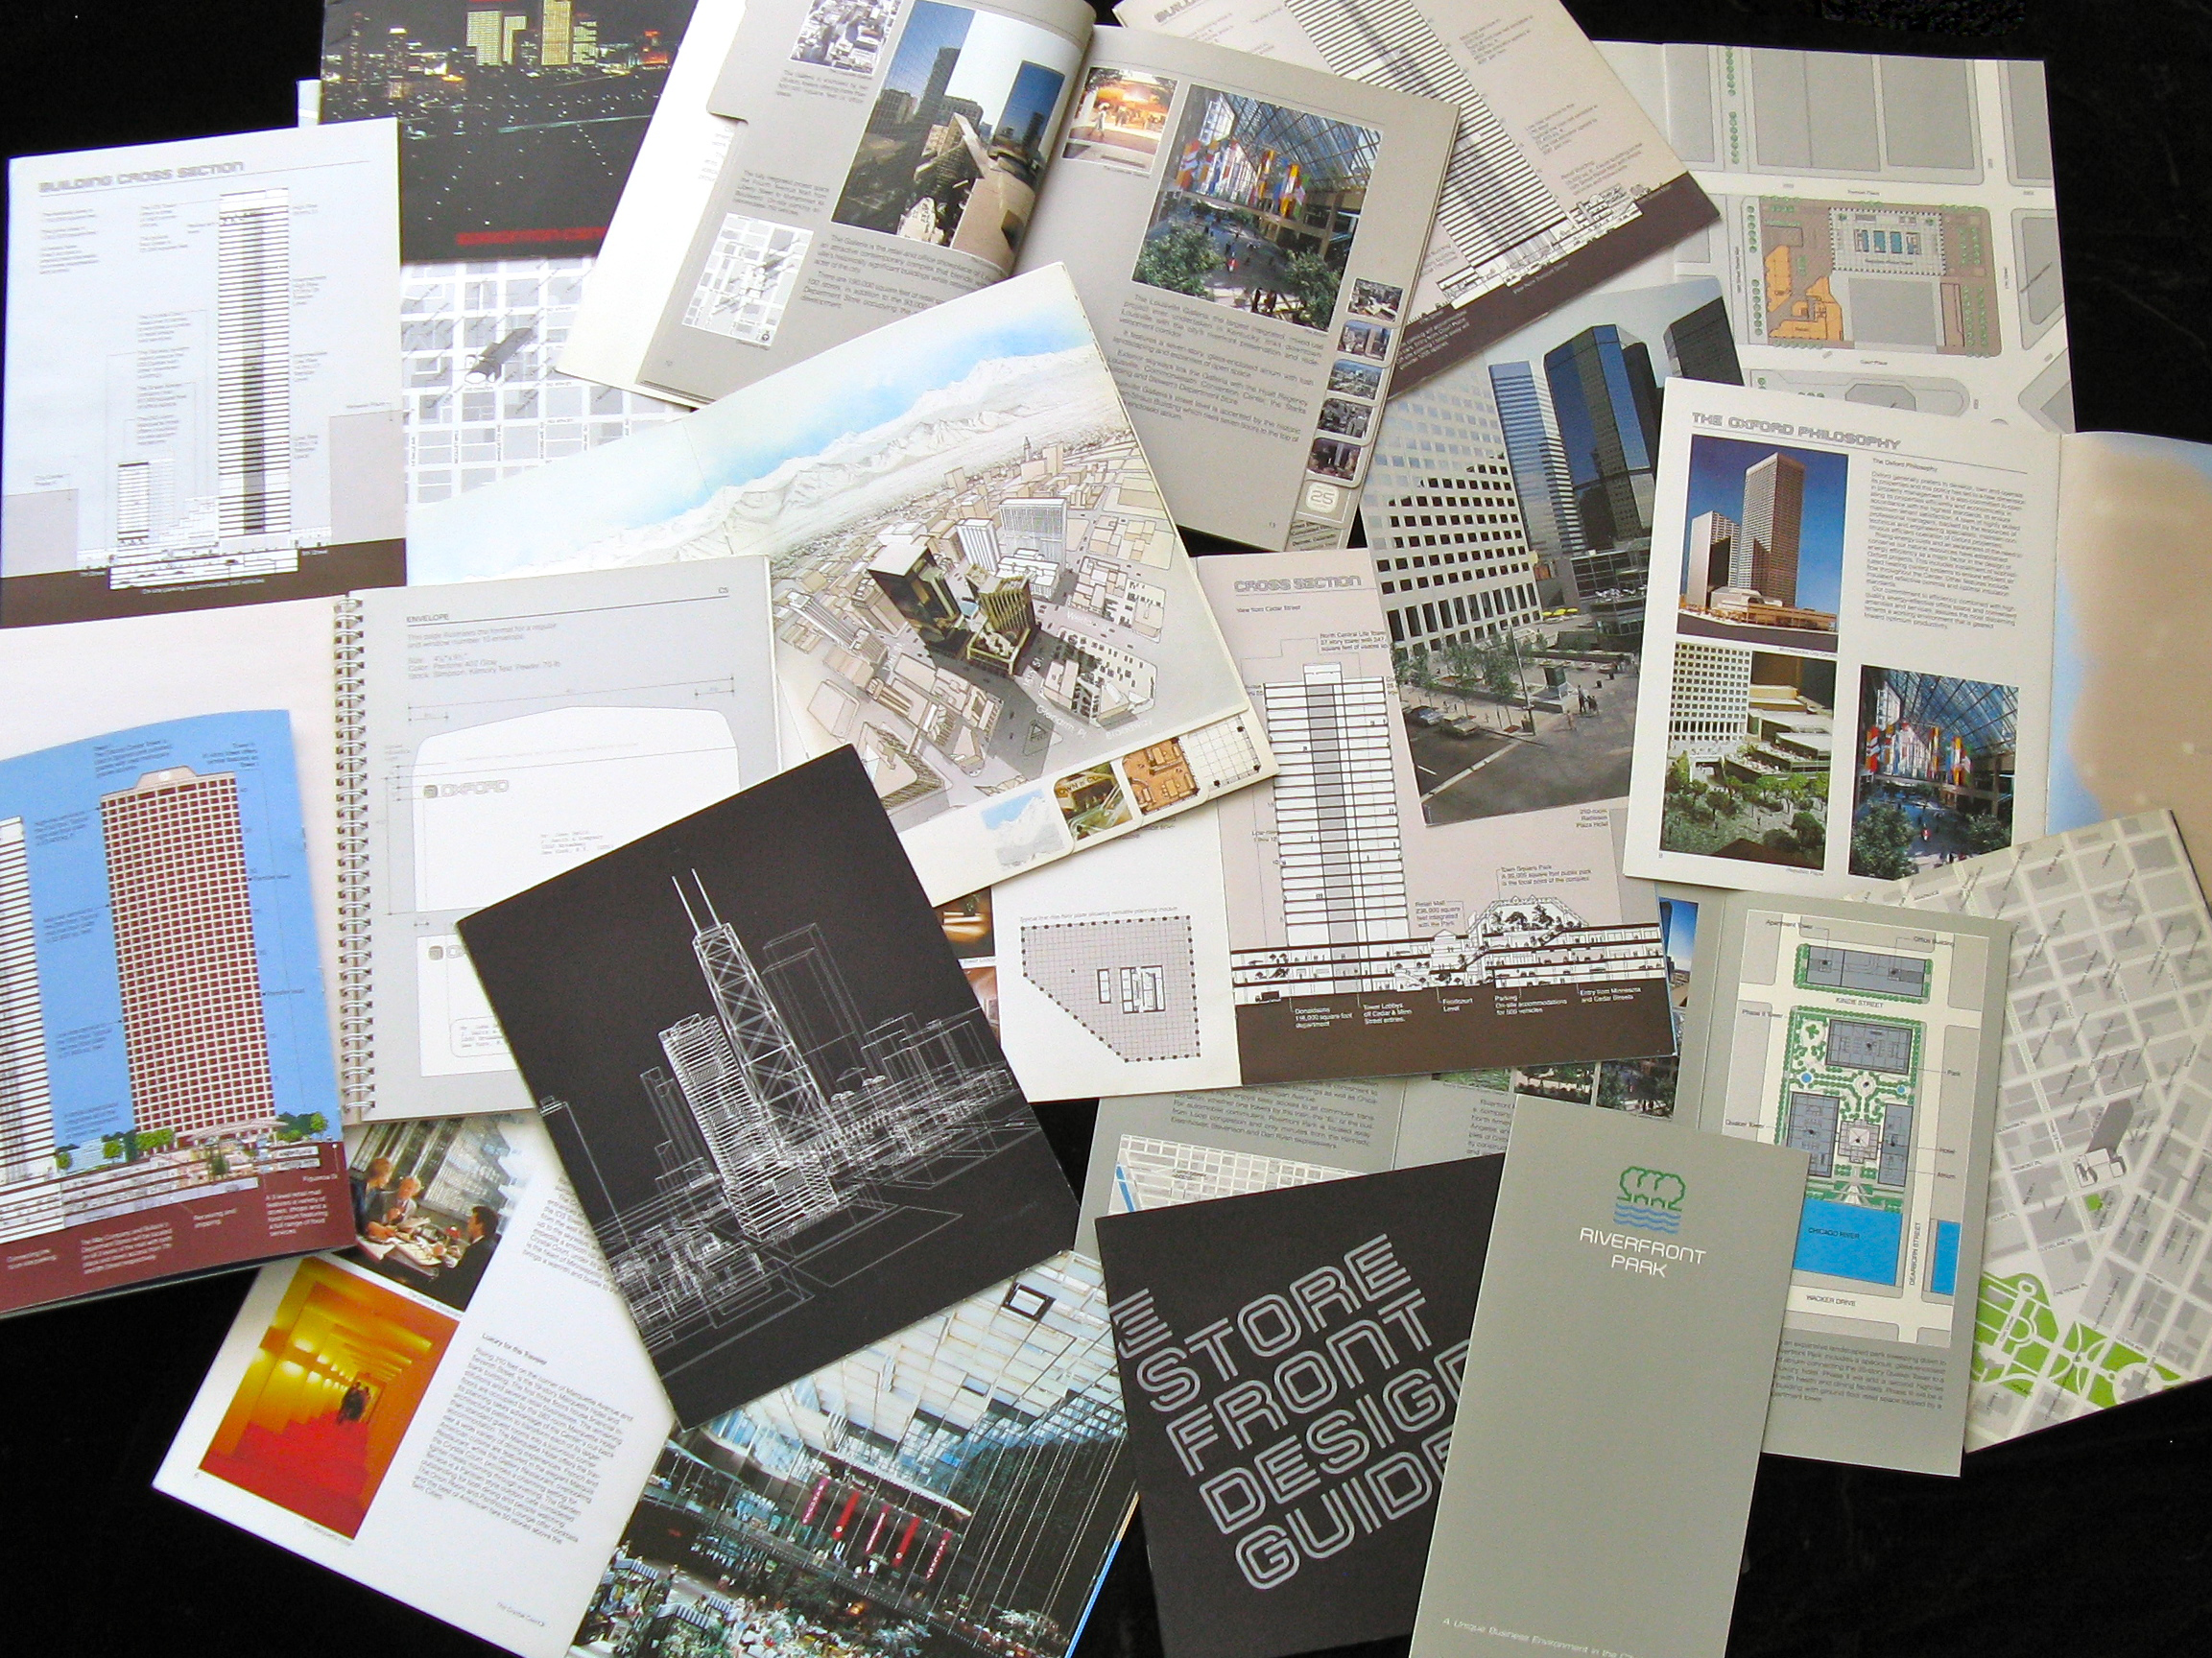 A collection of Oxford Properties brochures spread out on a table.